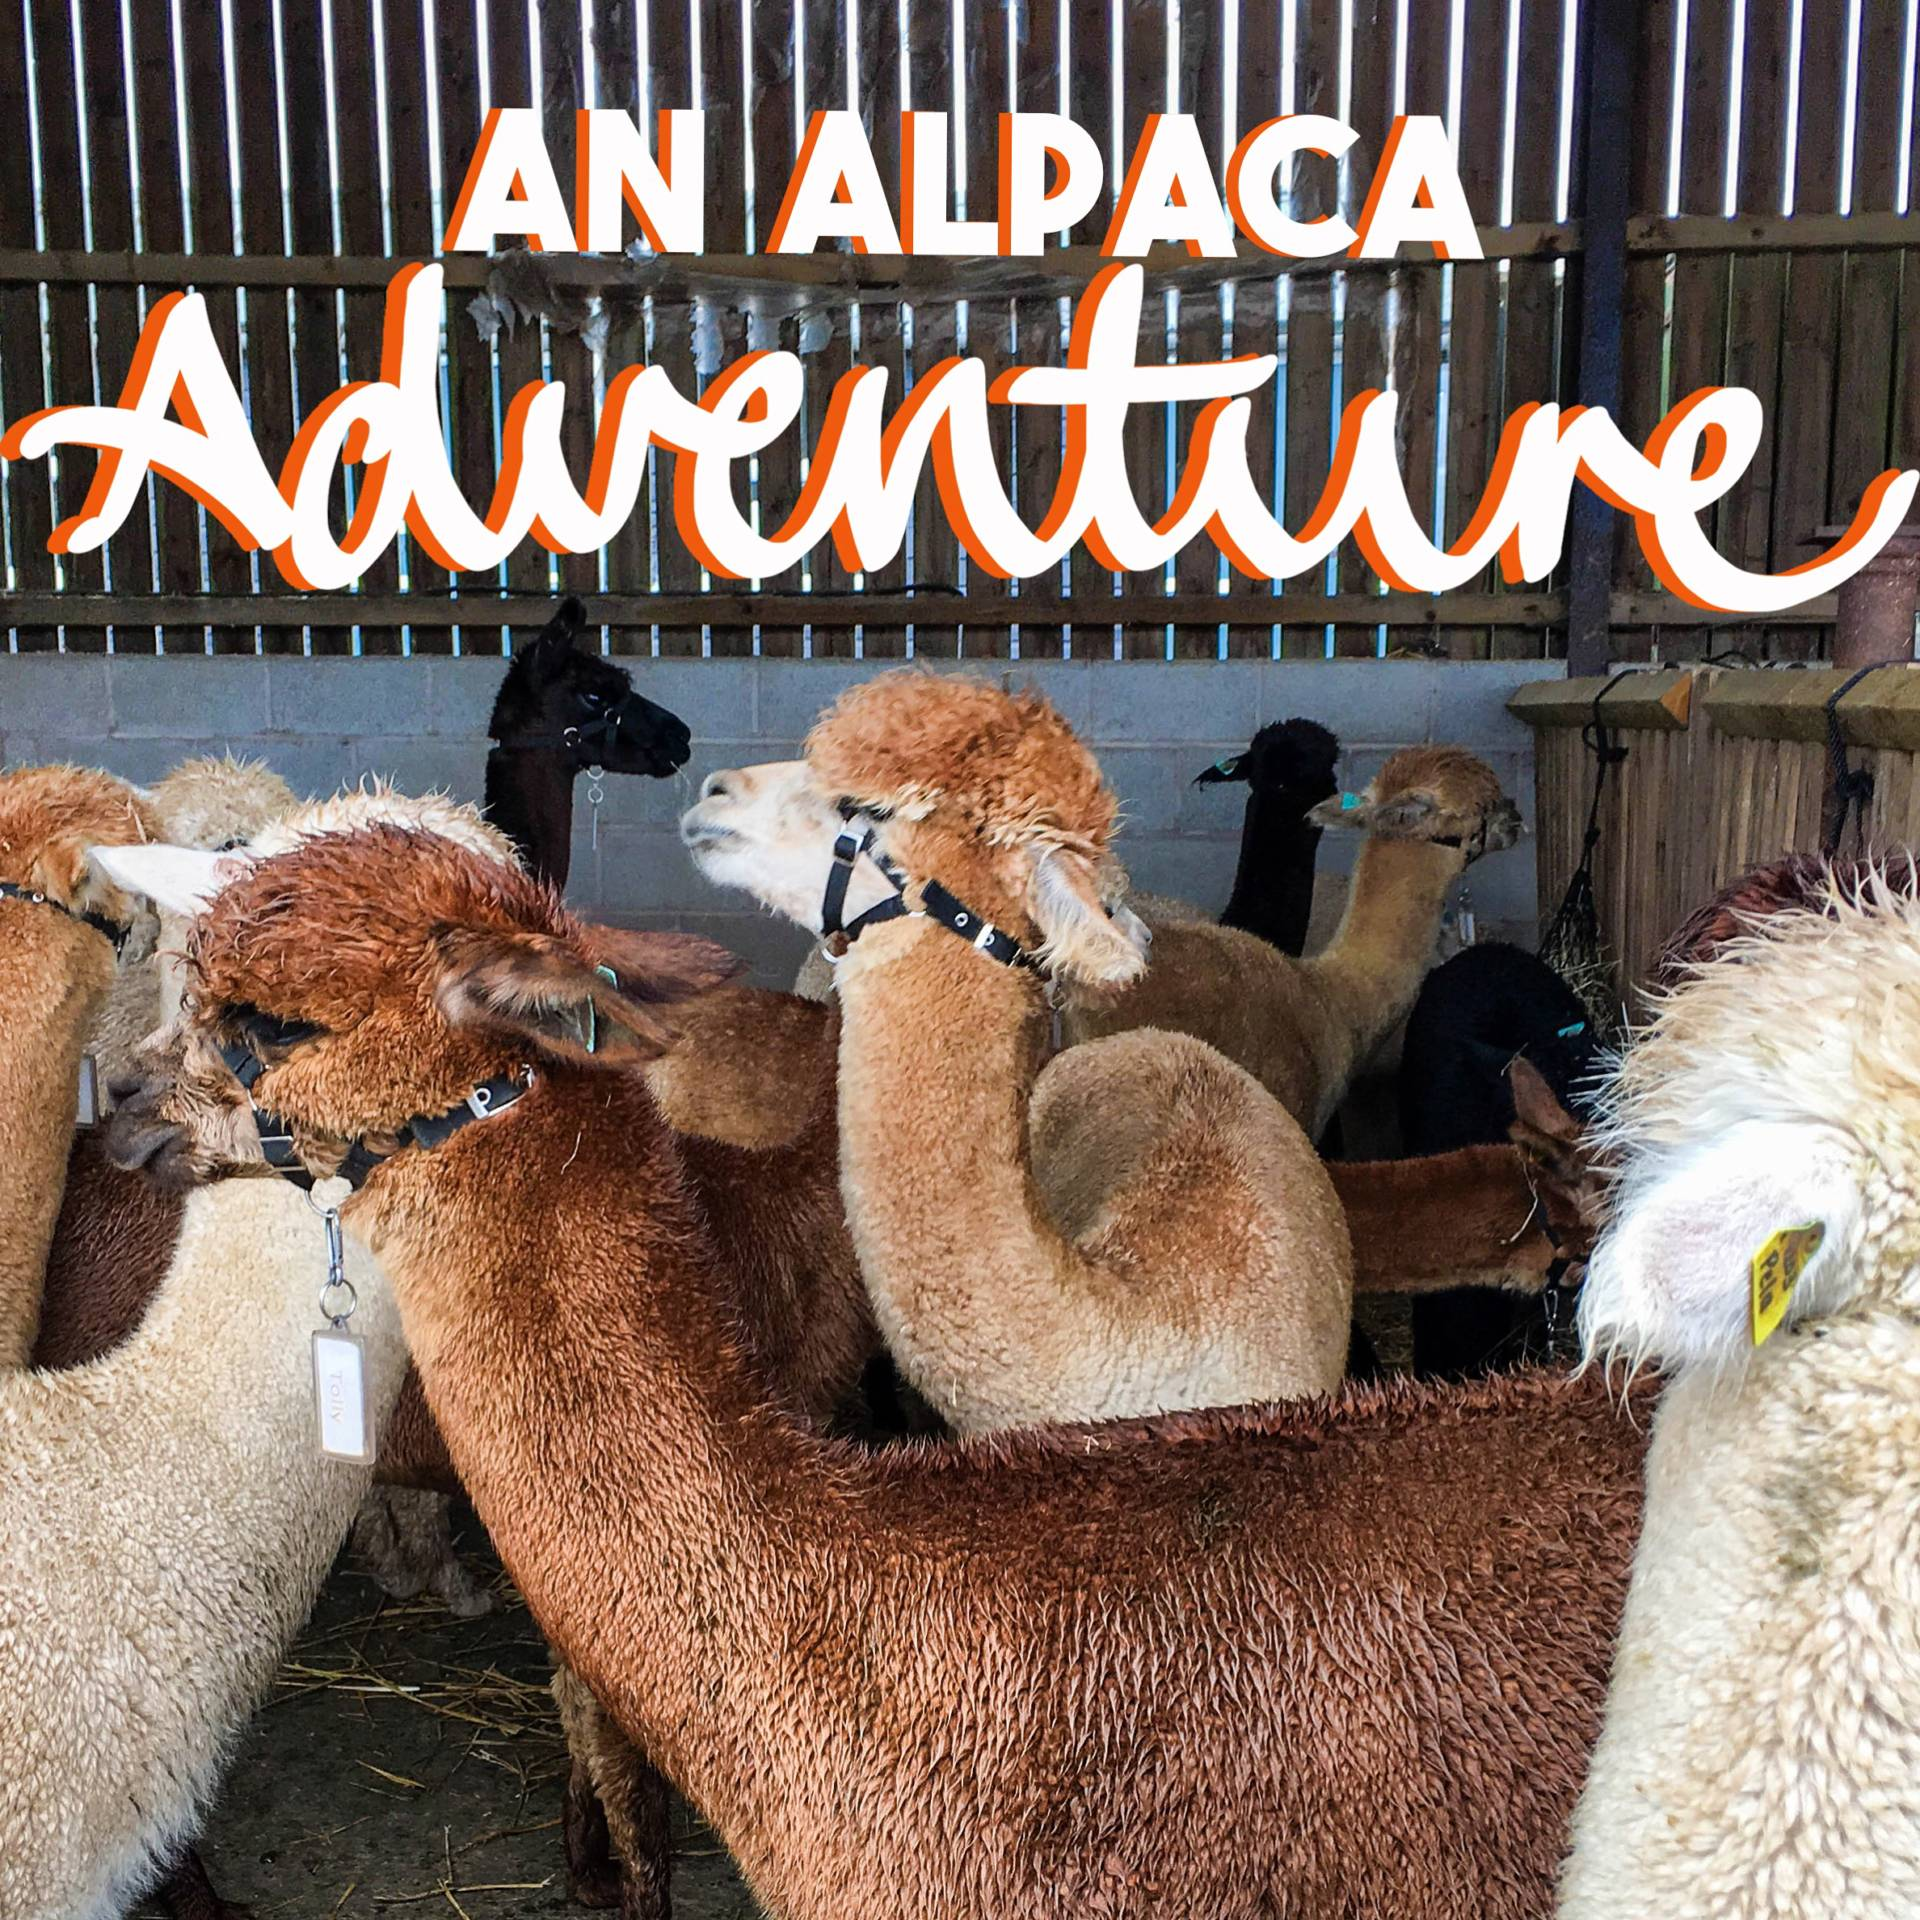 An Alpaca Adventure! at www.elistonbutton.com - Eliston Button - That Crafty Kid – Art, Design, Craft & Adventure.